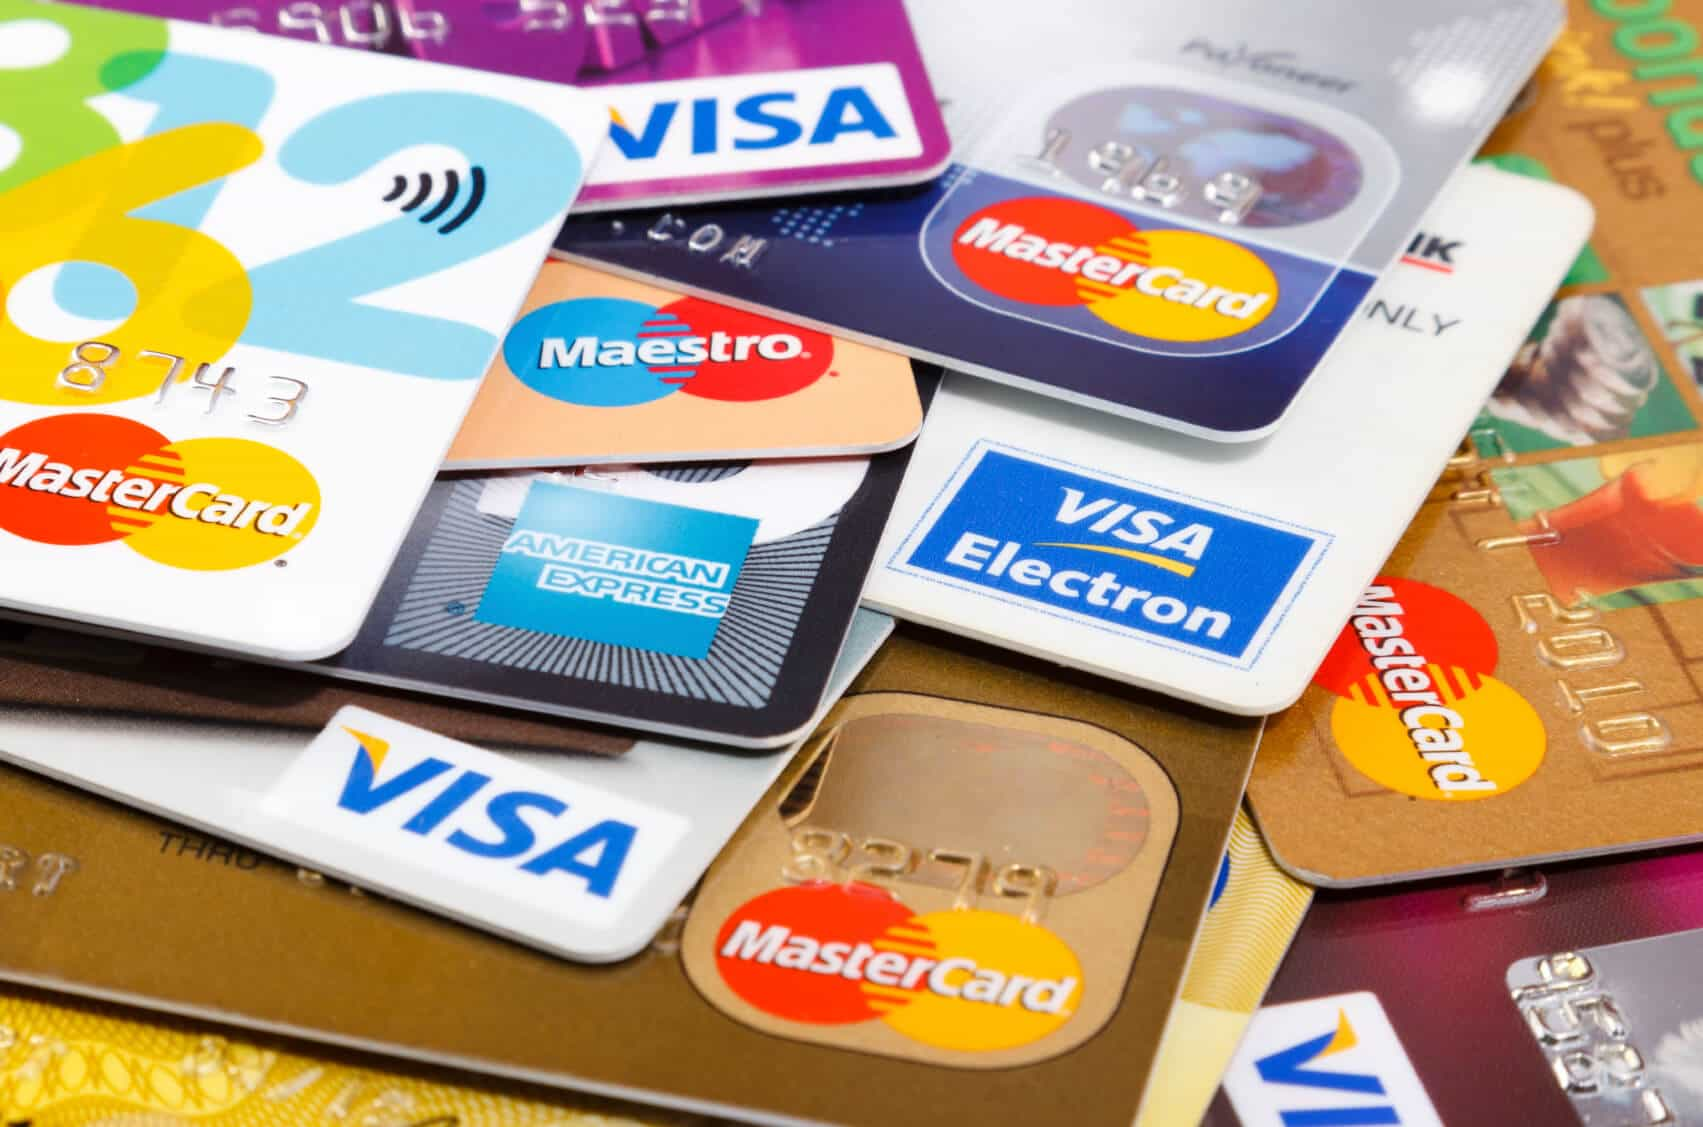 The Best Prepaid Debit Cards